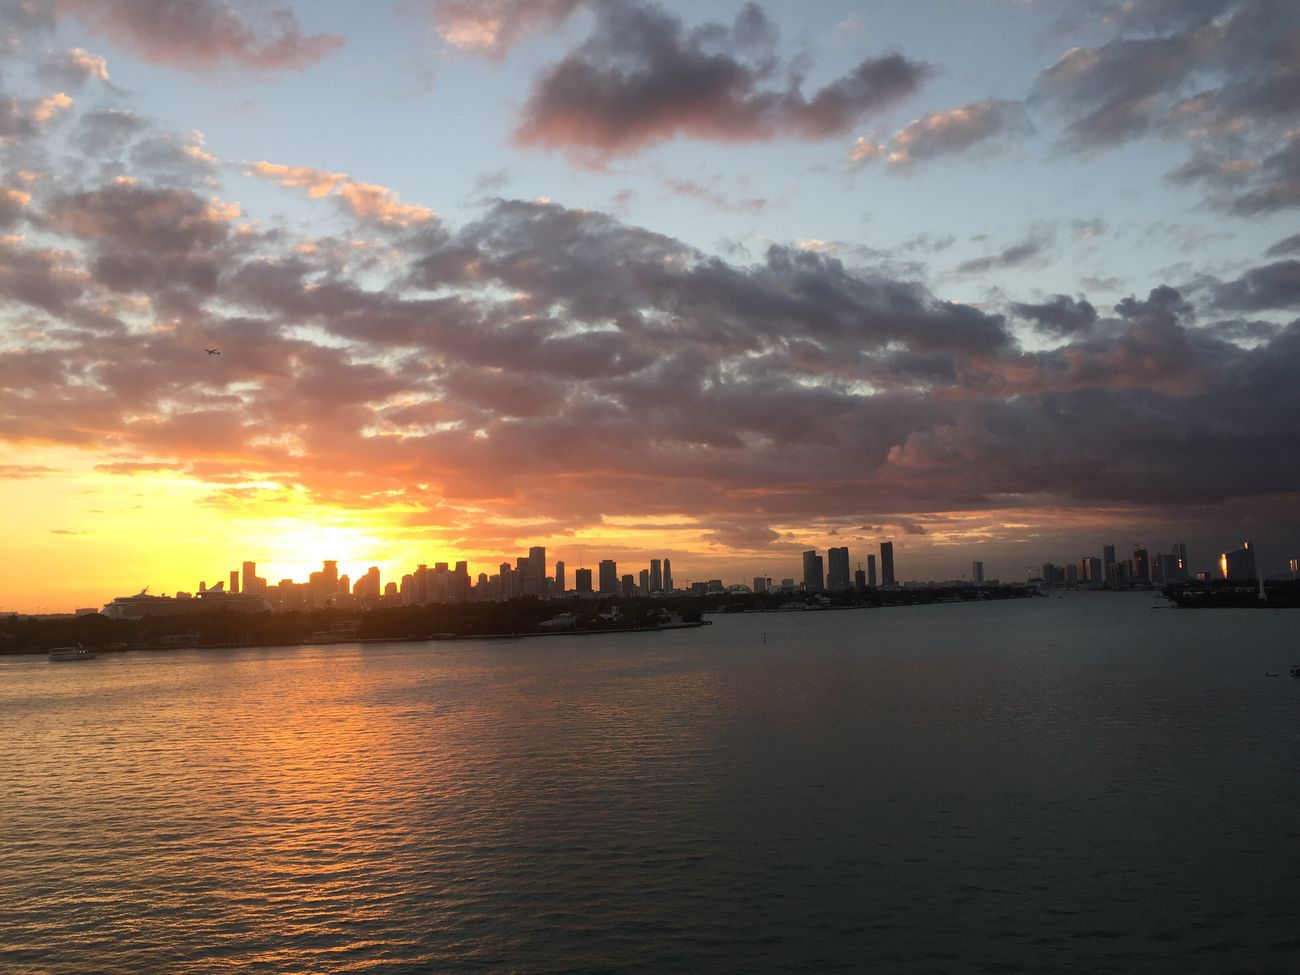 Sunset Sunset Today Sunset Time Enjoying The View Amazing Sunset Sunset_collection Sunset And Clouds  Sun Reflection On Water Sunset_captures Sunsetphotographs Enjoying The Sunset Beauty In Nature Biscayne Bay